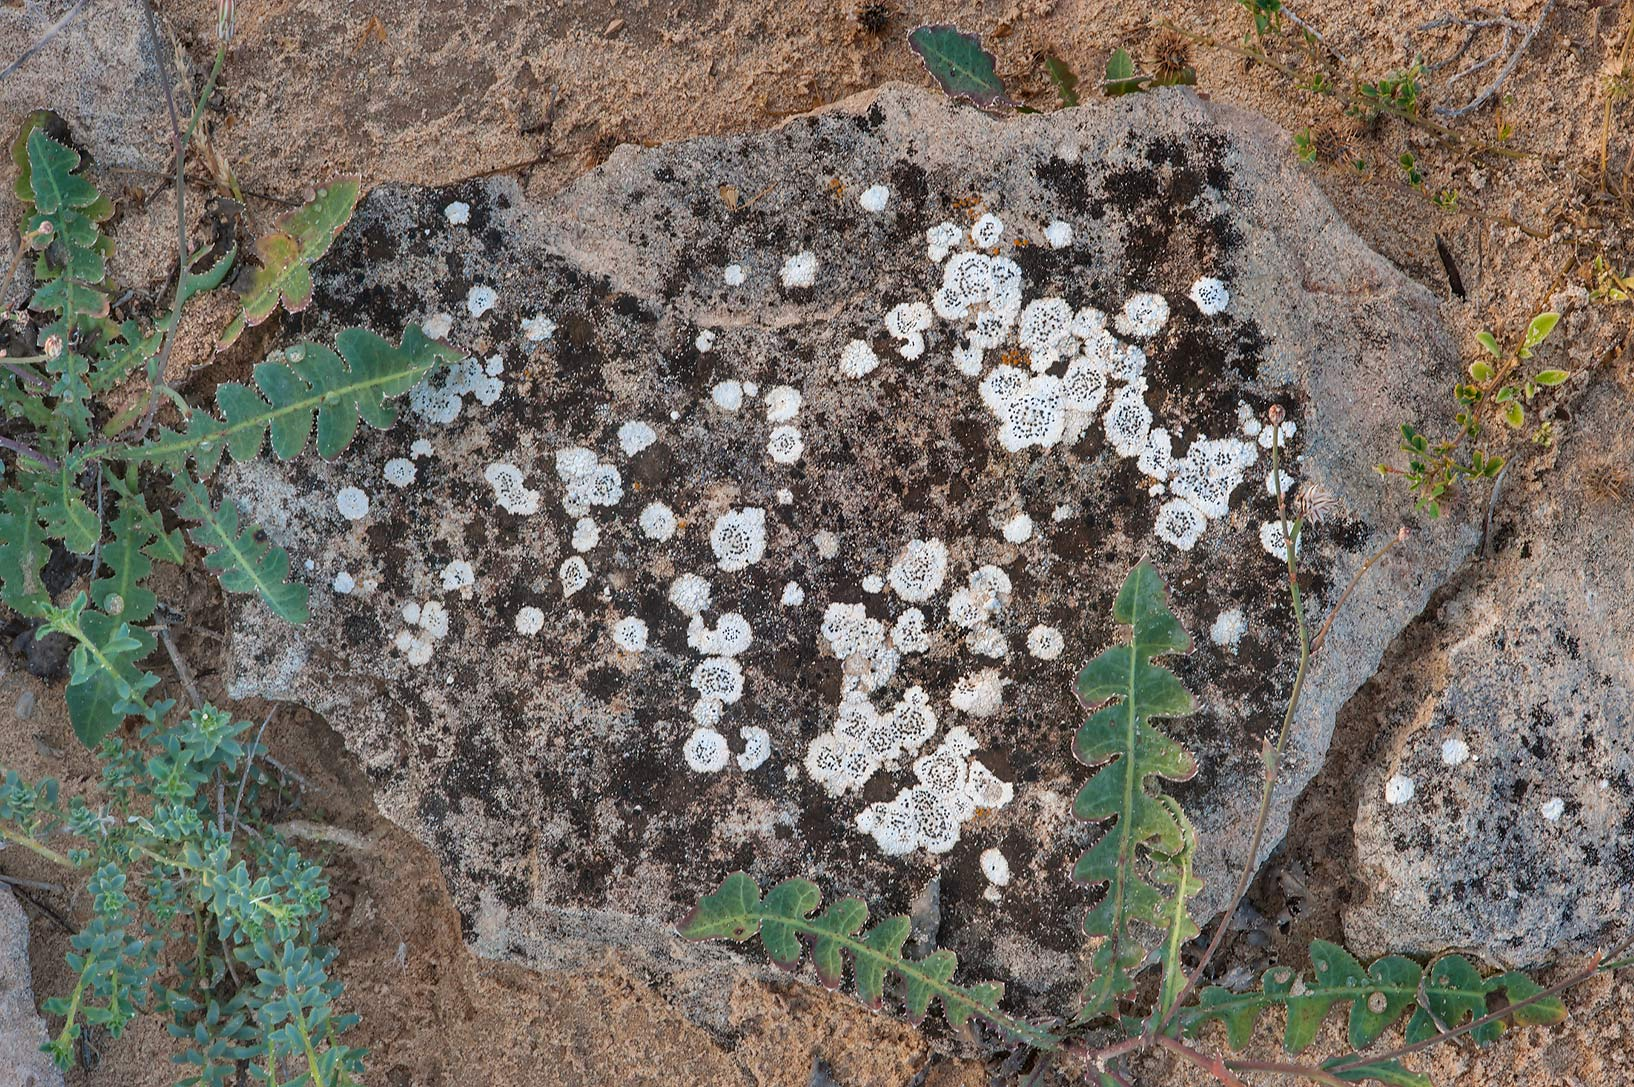 Buellia subalbula (white with black apothecia...of Jebel Fuwairit. Northern Qatar